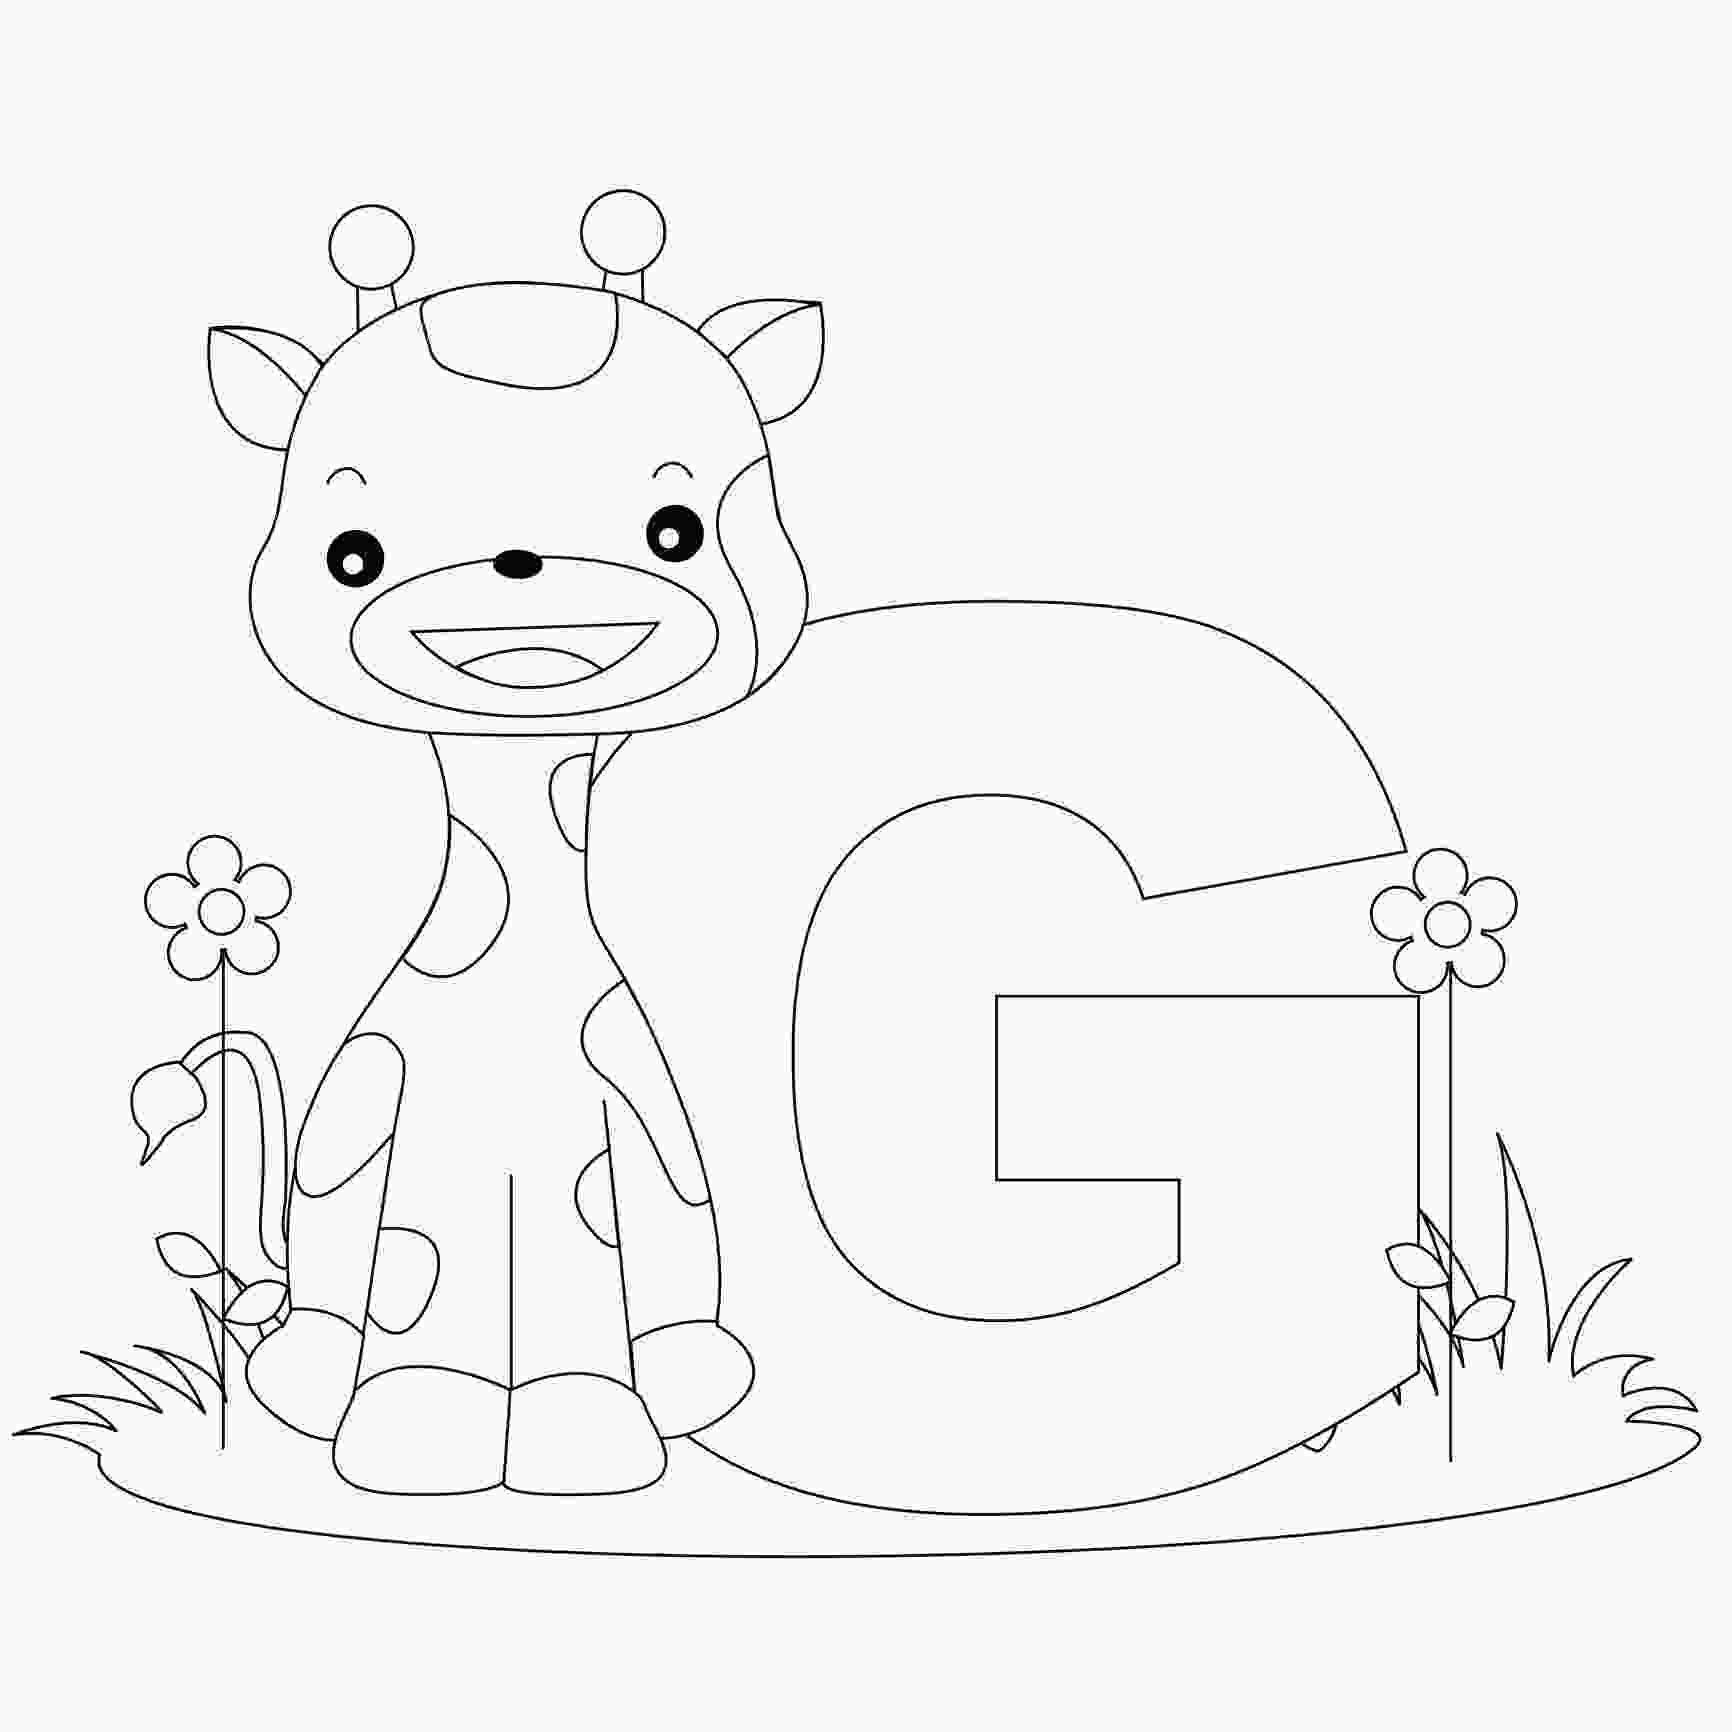 c for coloring free printable alphabet coloring pages for kids best